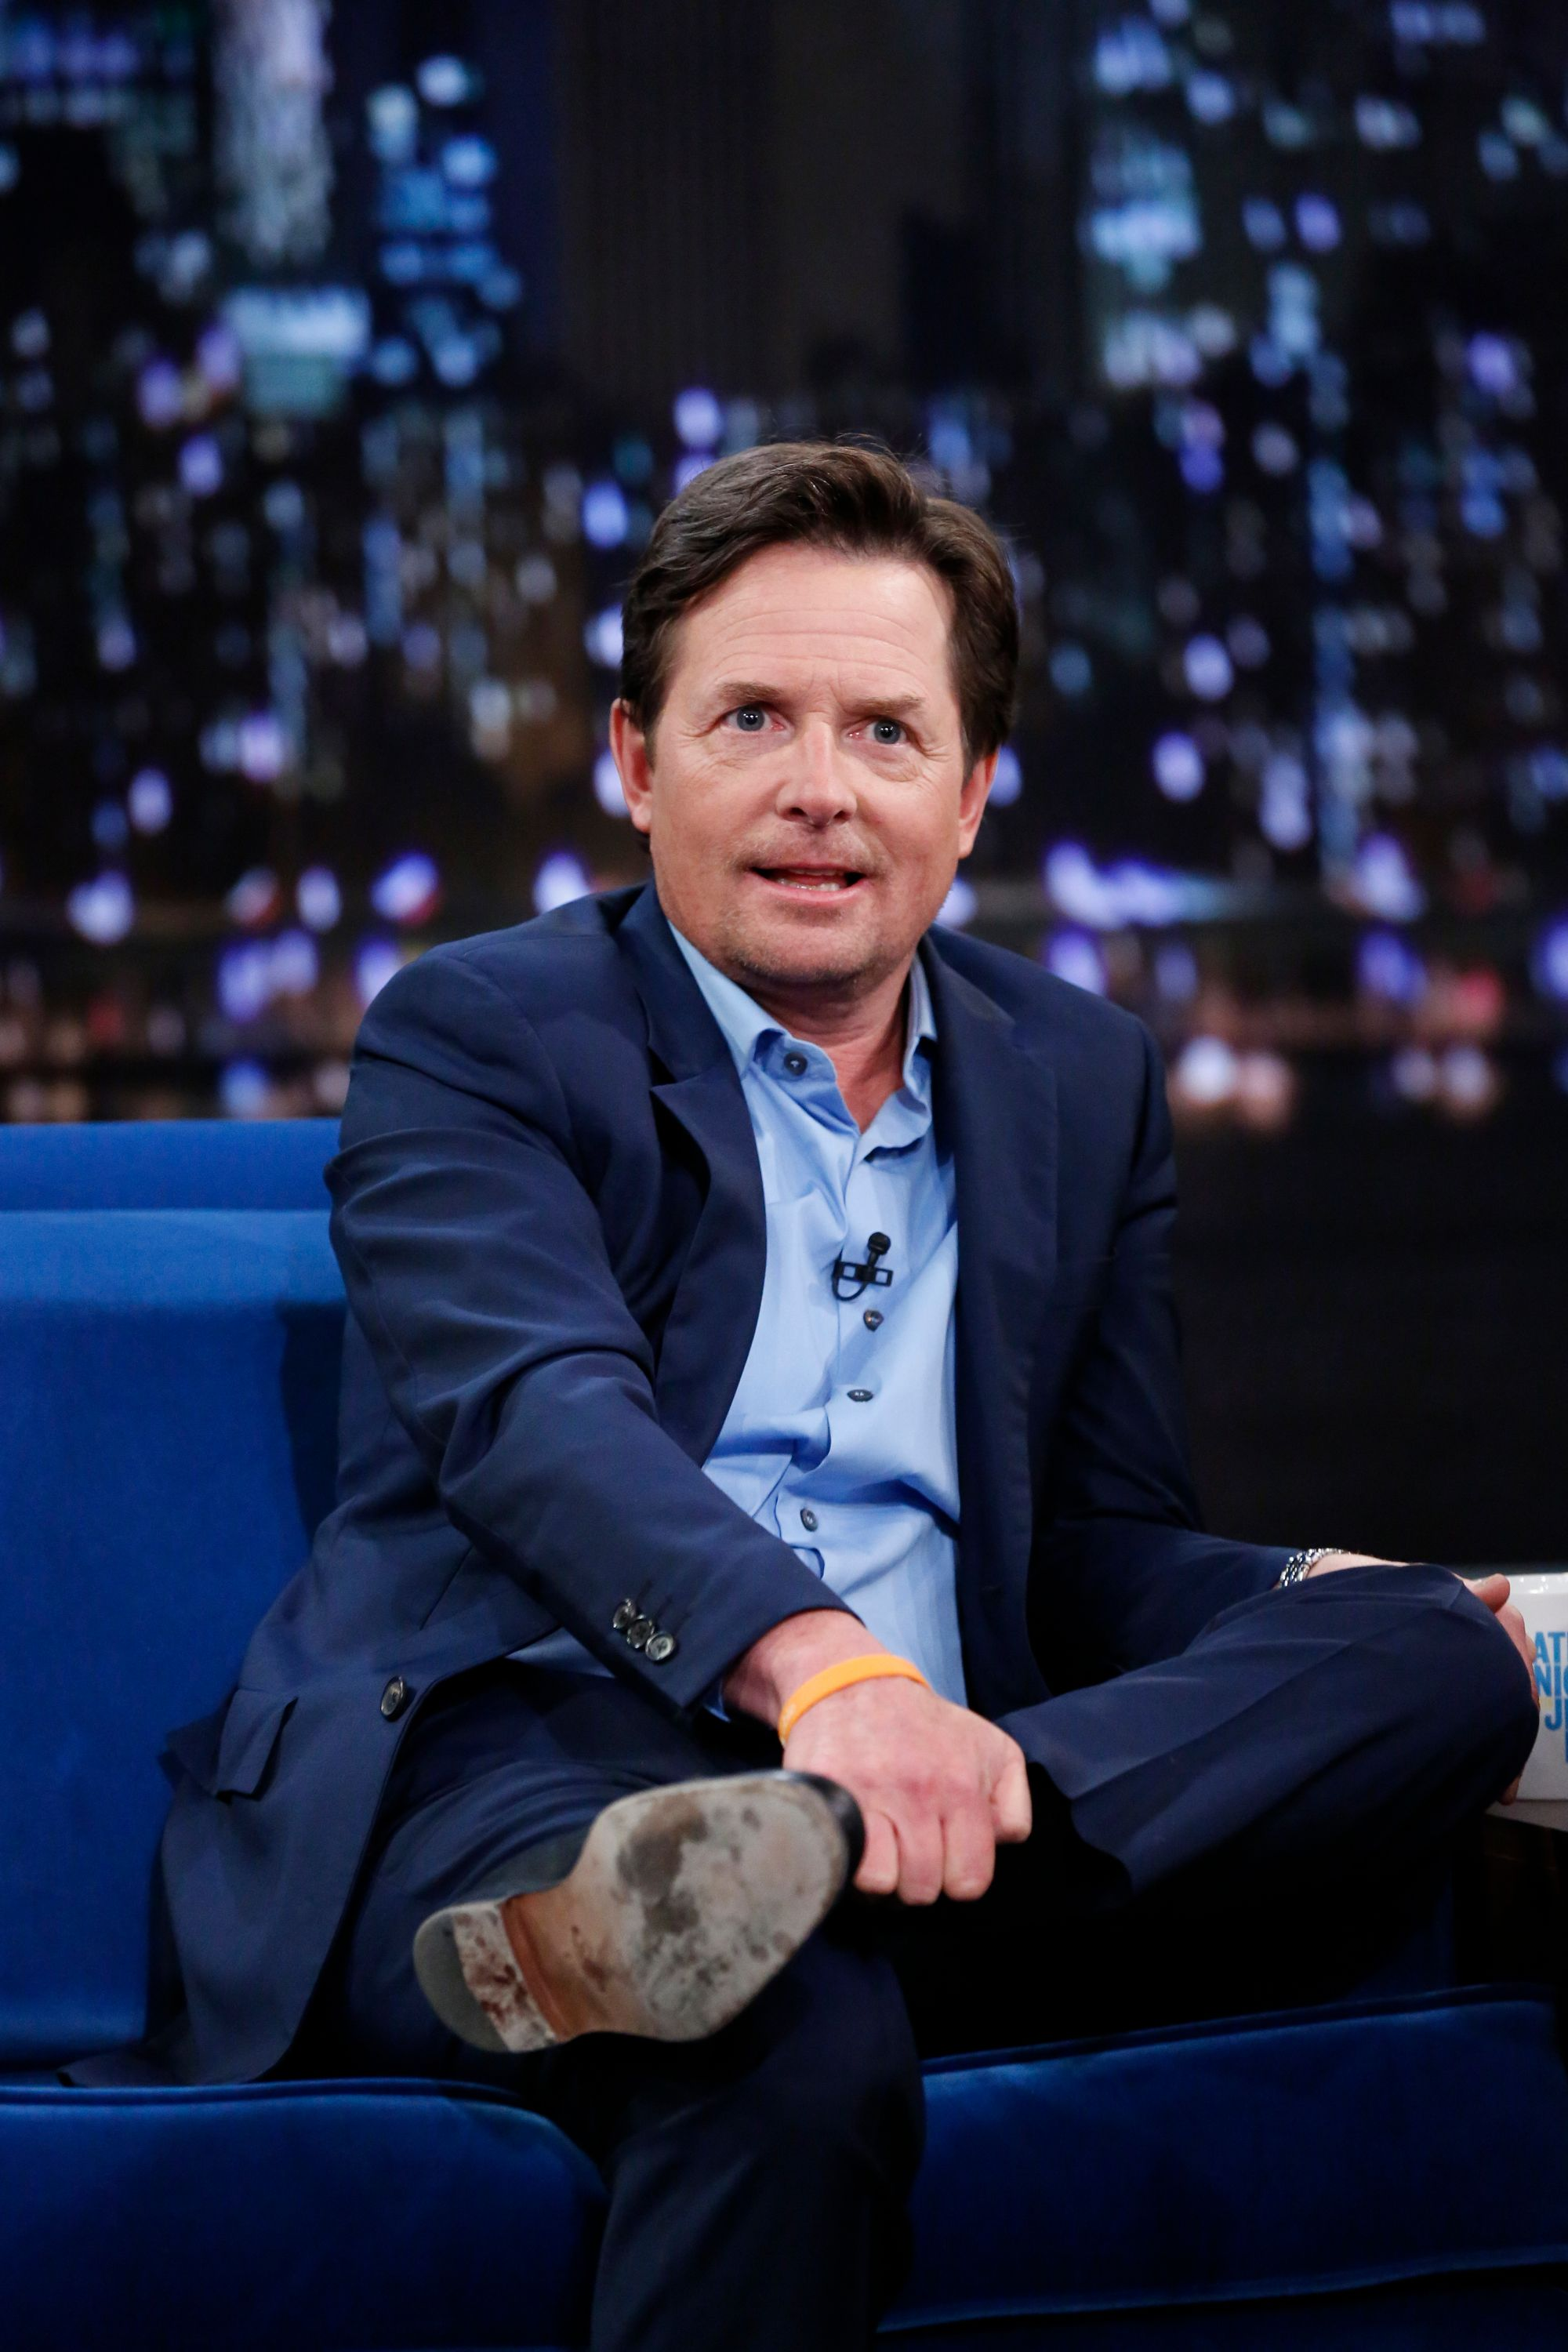 """Michael J. Fox on season 5 of the """"Late Night with Jimmy Fallon"""" on September 25, 2013   Photo: Lloyd Bishop/NBCU Photo Bank/NBCUniversal/Getty Images"""